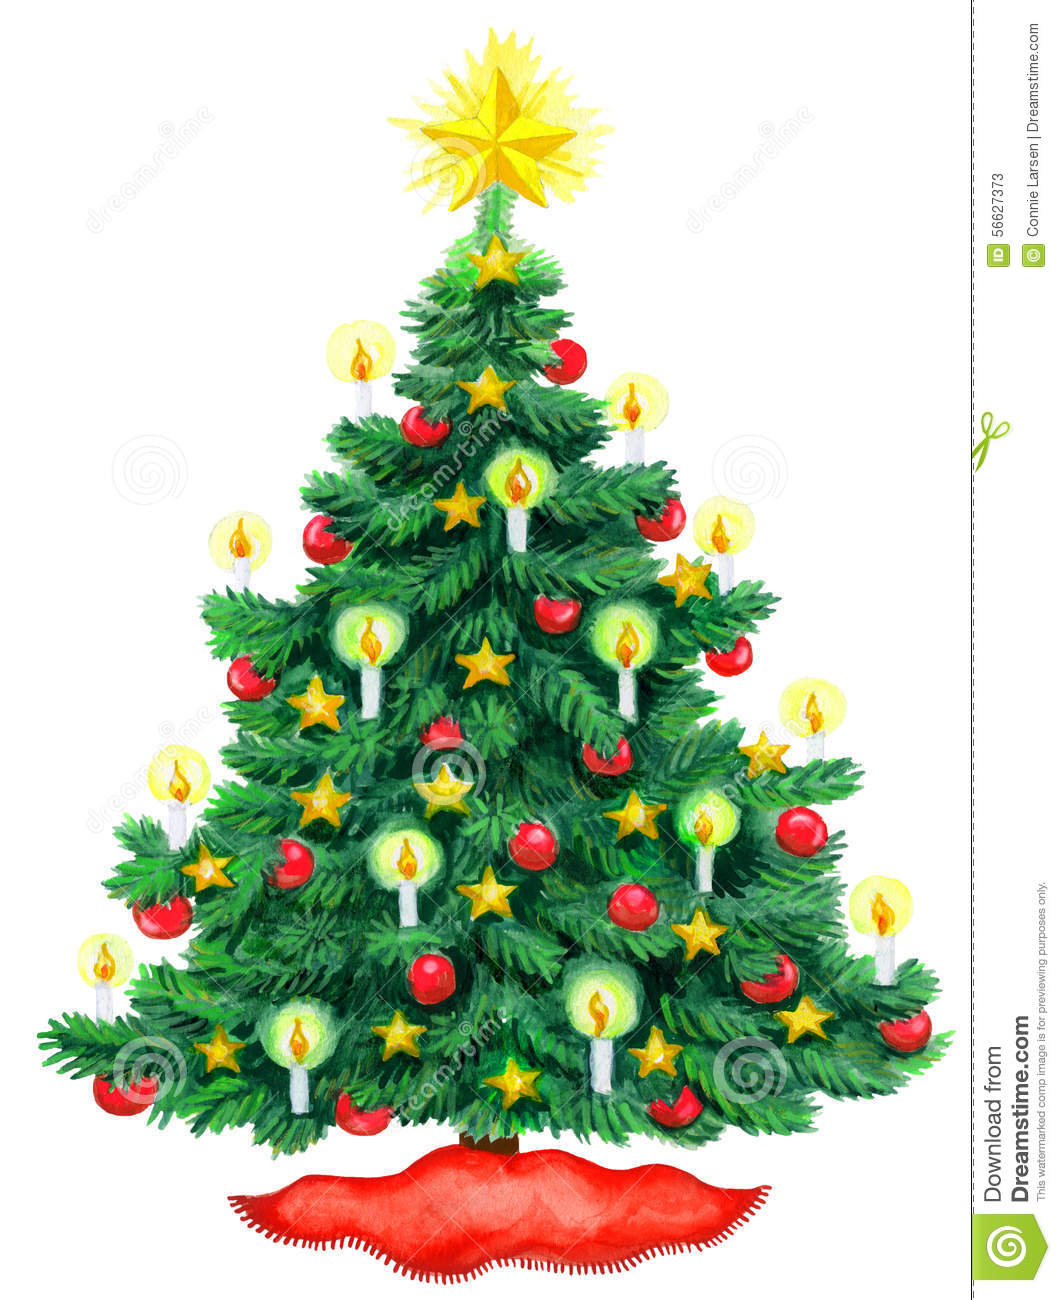 Watercolour Christmas Tree: Christmas Tree Watercolor Stock Illustration. Illustration